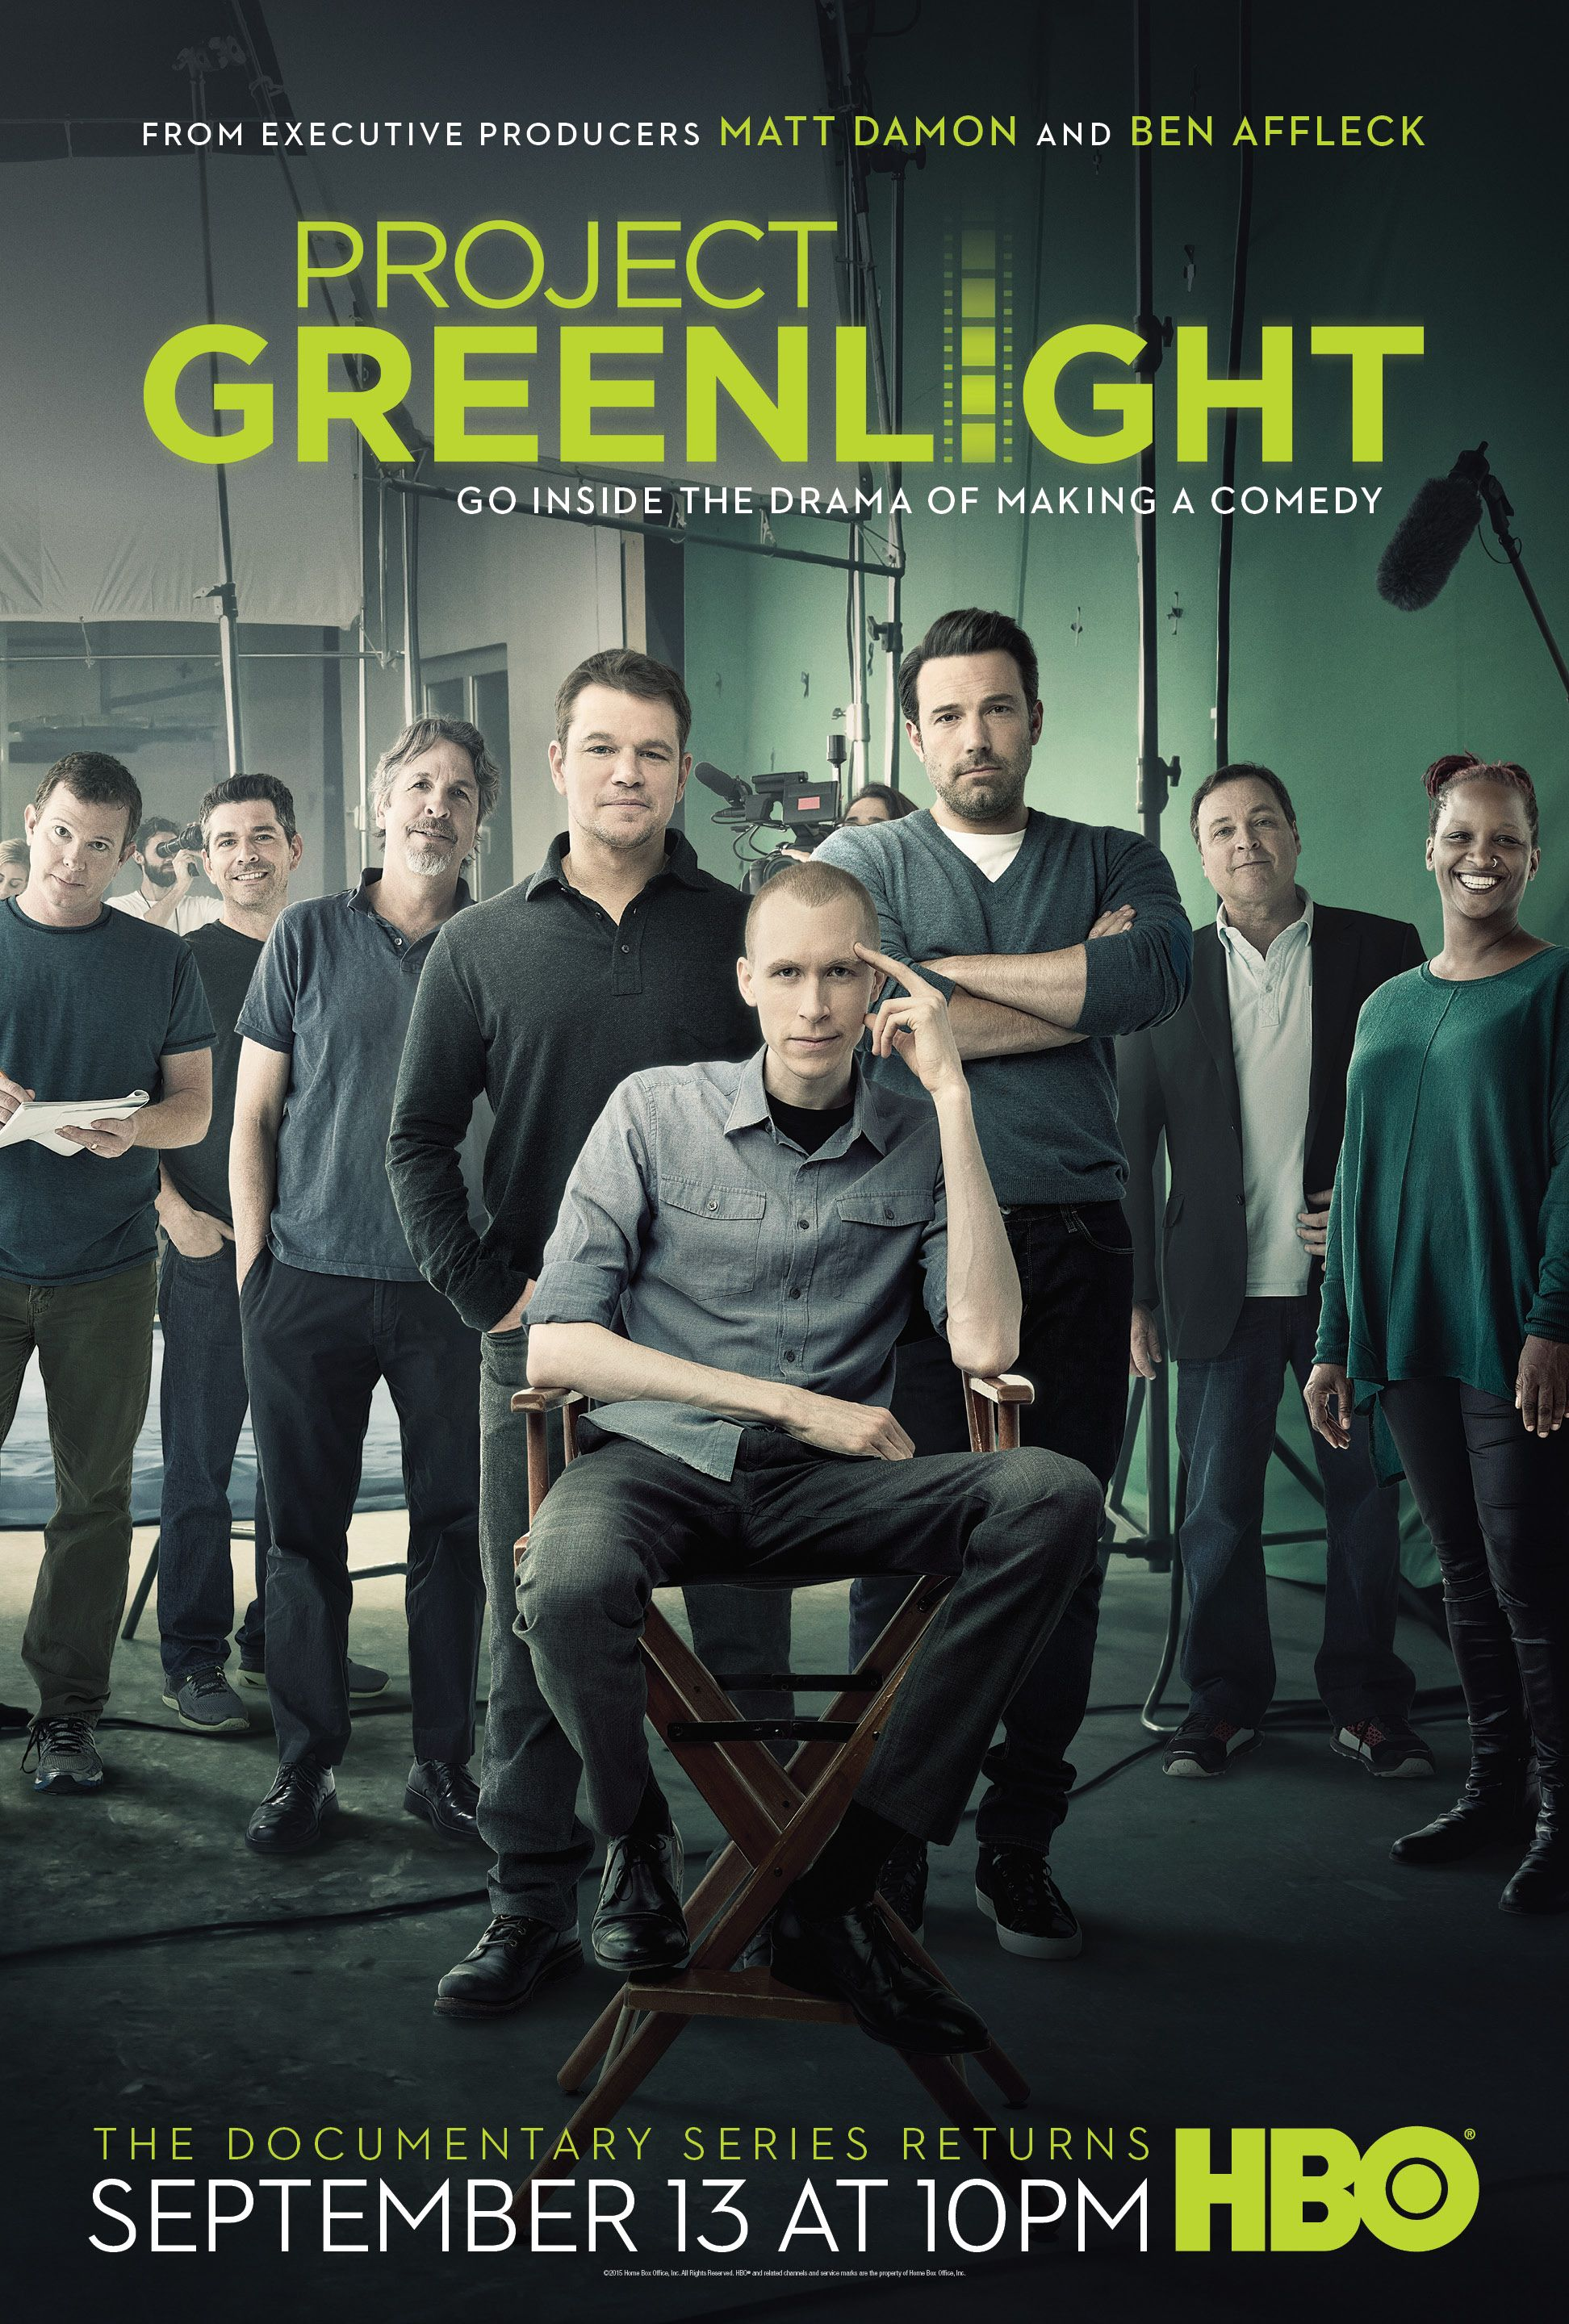 project greenlight What really happened on project greenlight season 4 was it fake were the events edited deceptively to make a dramatic reality tv series find out.